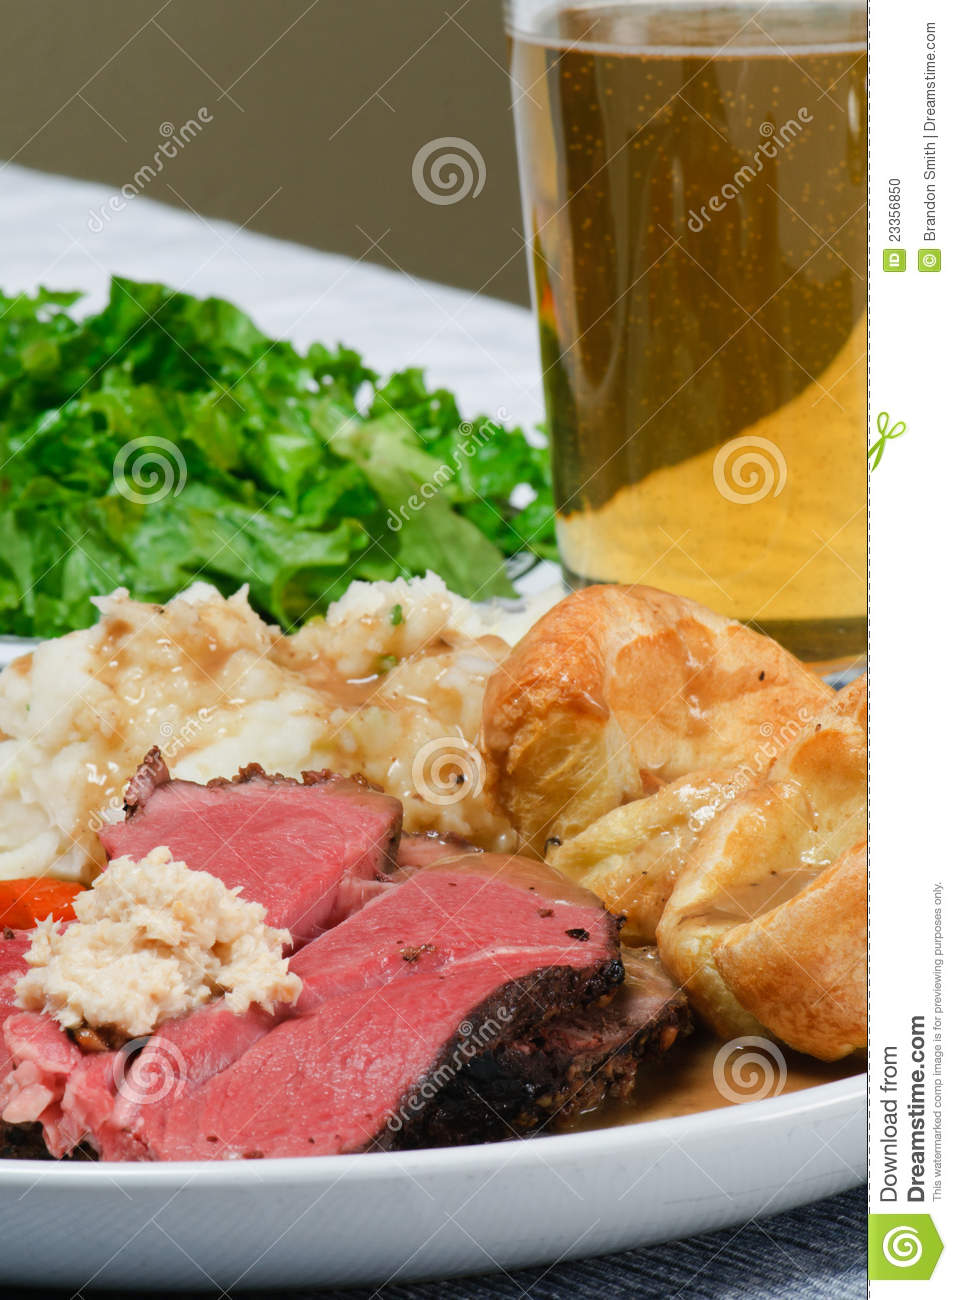 Roast Beef Dinner Stock Photo - Image: 23356850